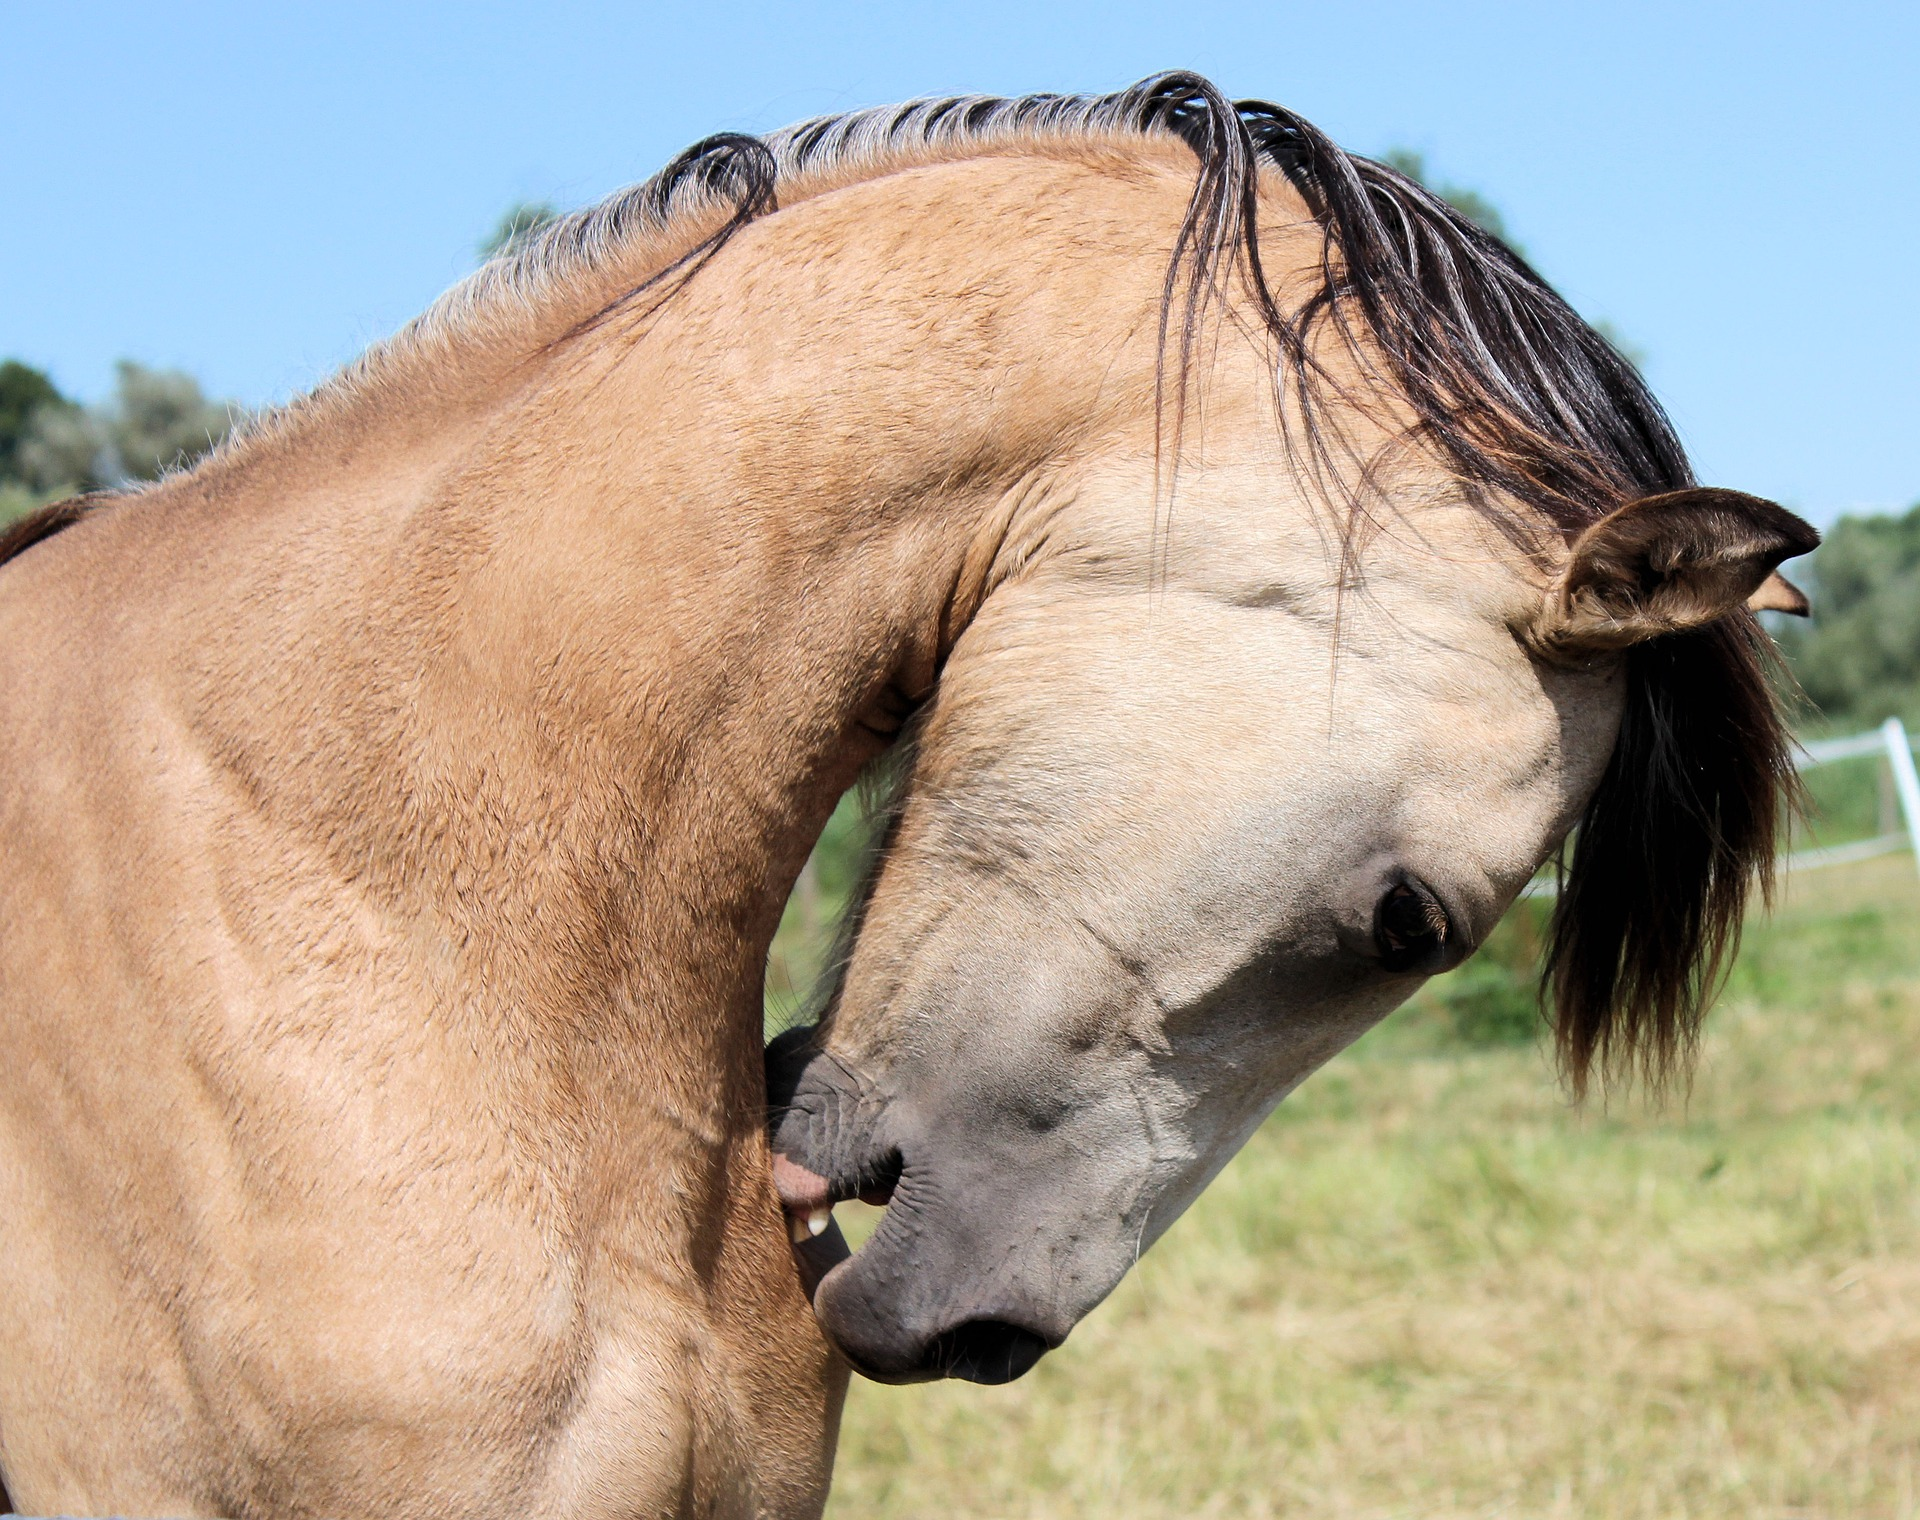 Bugs are a real nuisance for any horse, be sure to inspect before and after turnout for any bites that have become inflamed, are bleeding or causing discomfort.